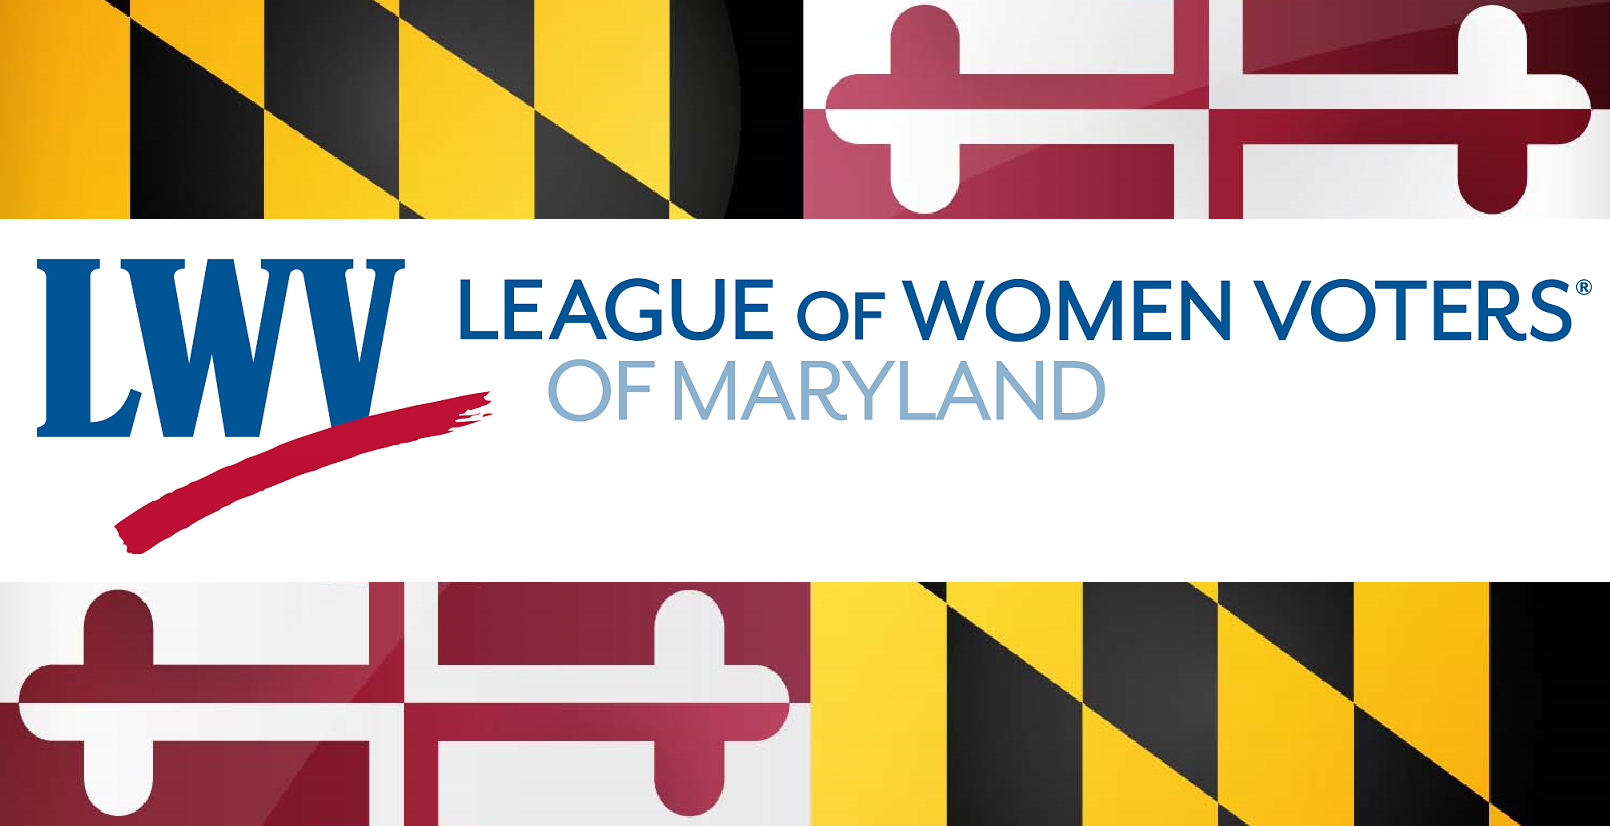 League of Women Voters of Maryland logo with MD flag